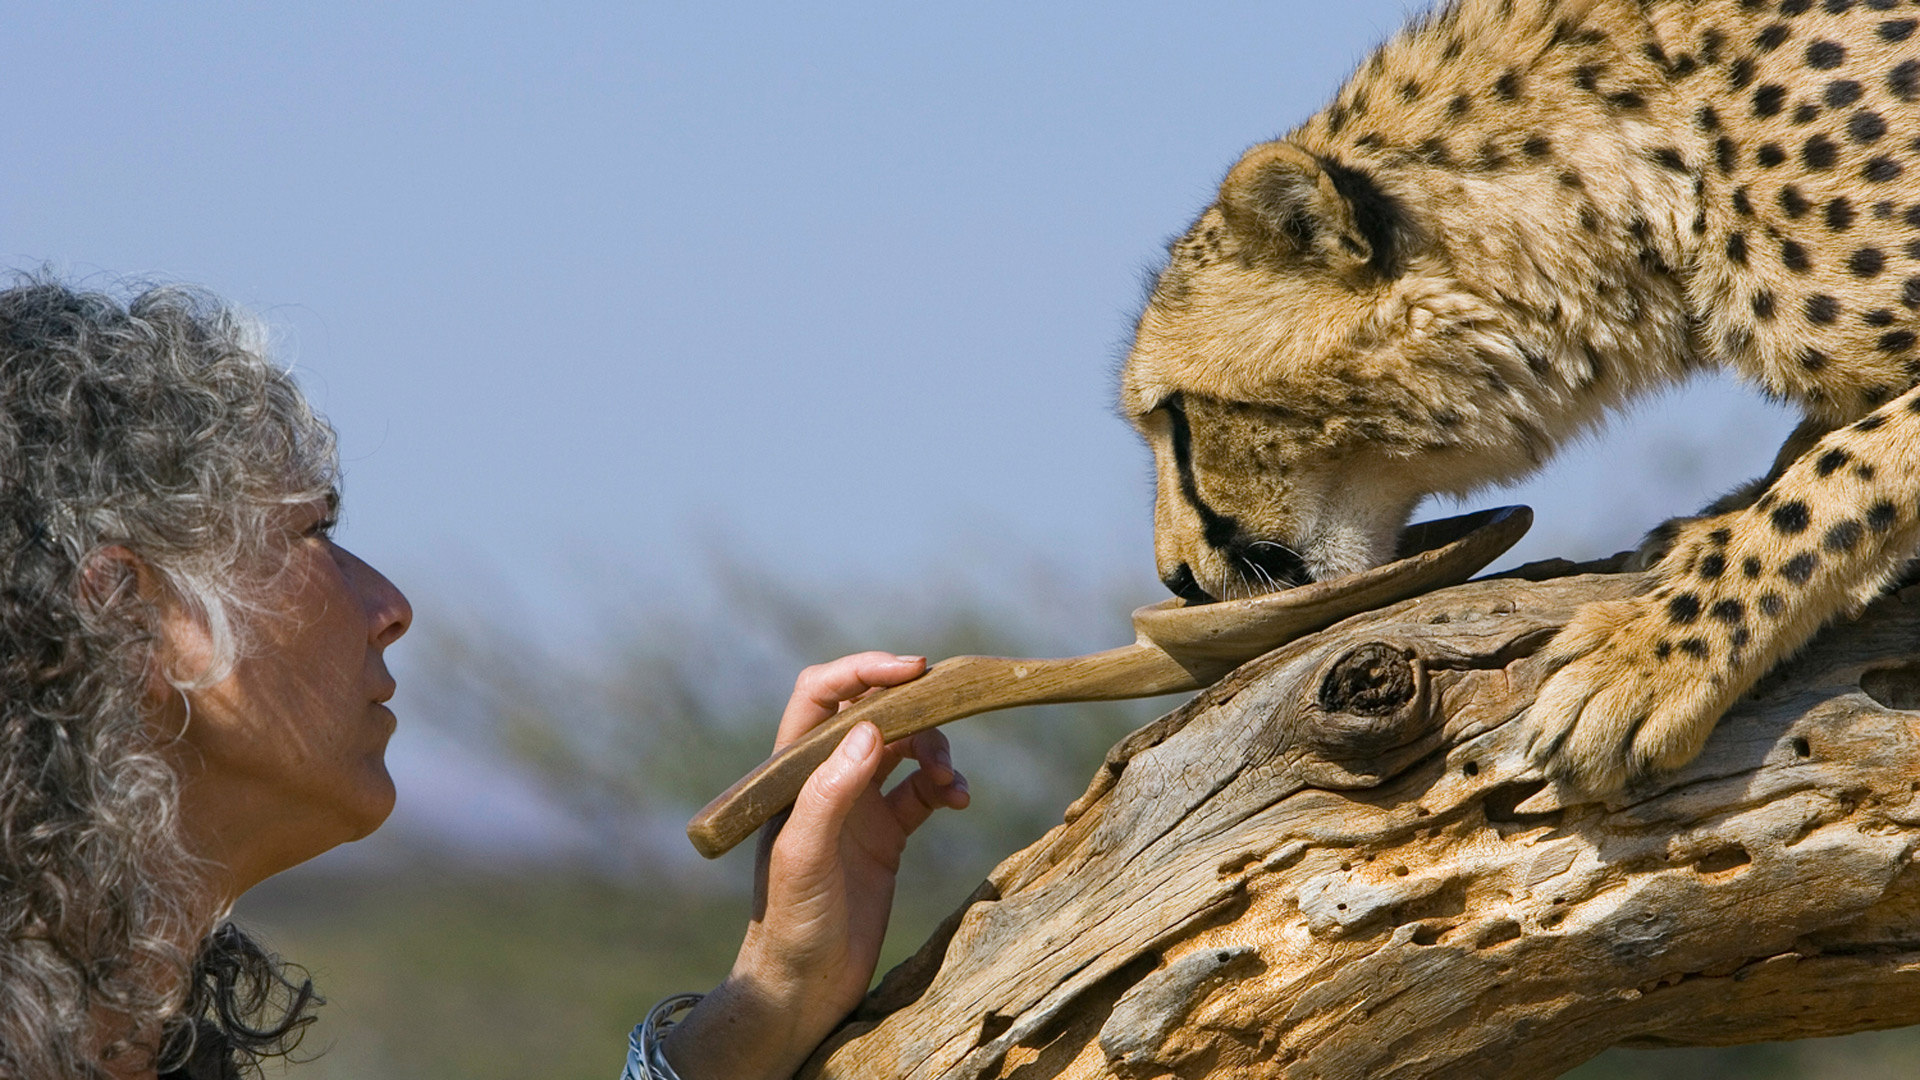 Dr. Laurie Marker feeding an orphaned cheetah, Suzi Eszterhas/Courtesy of Cheetah Conservation Fund